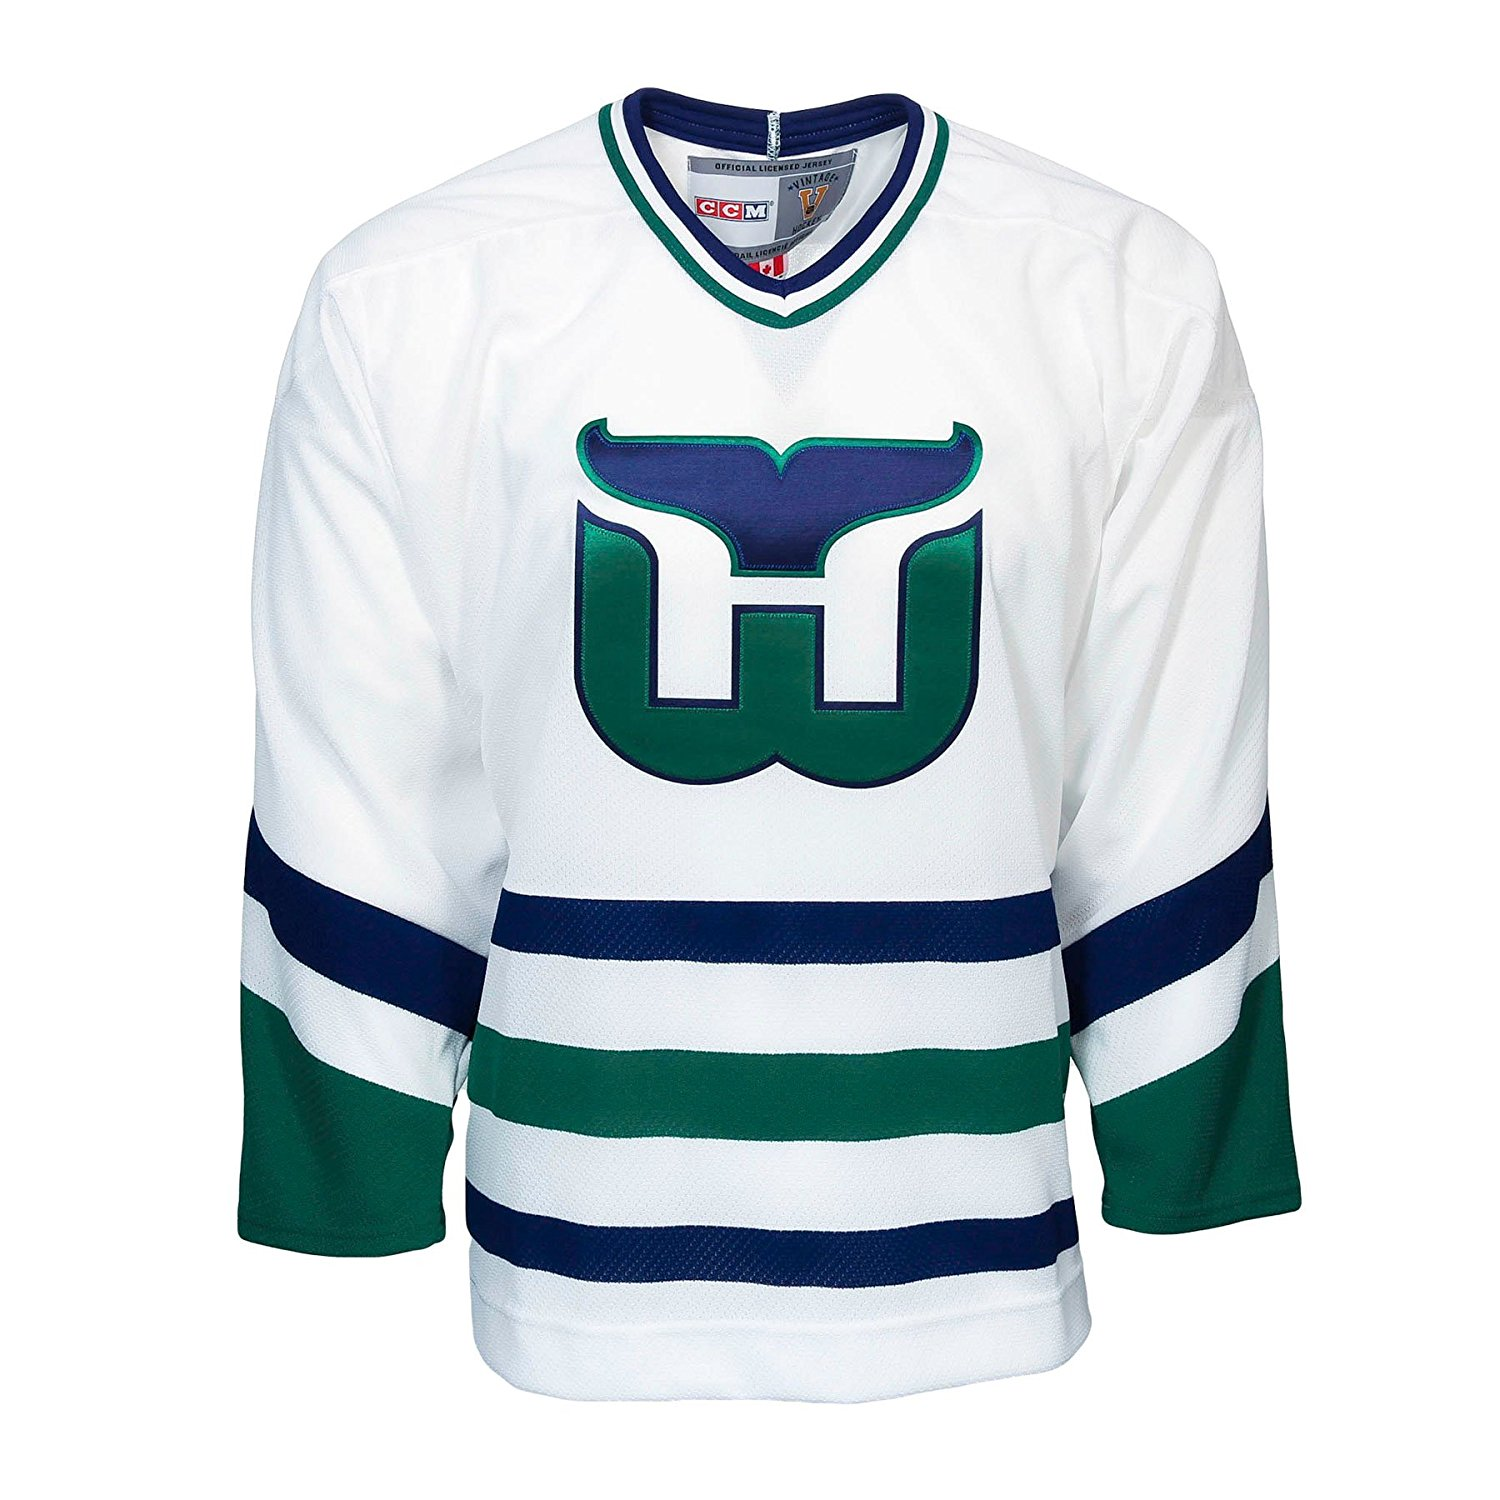 Get Quotations · Hartford Whalers Vintage Replica Jersey 1985 (Home) 67d958e02